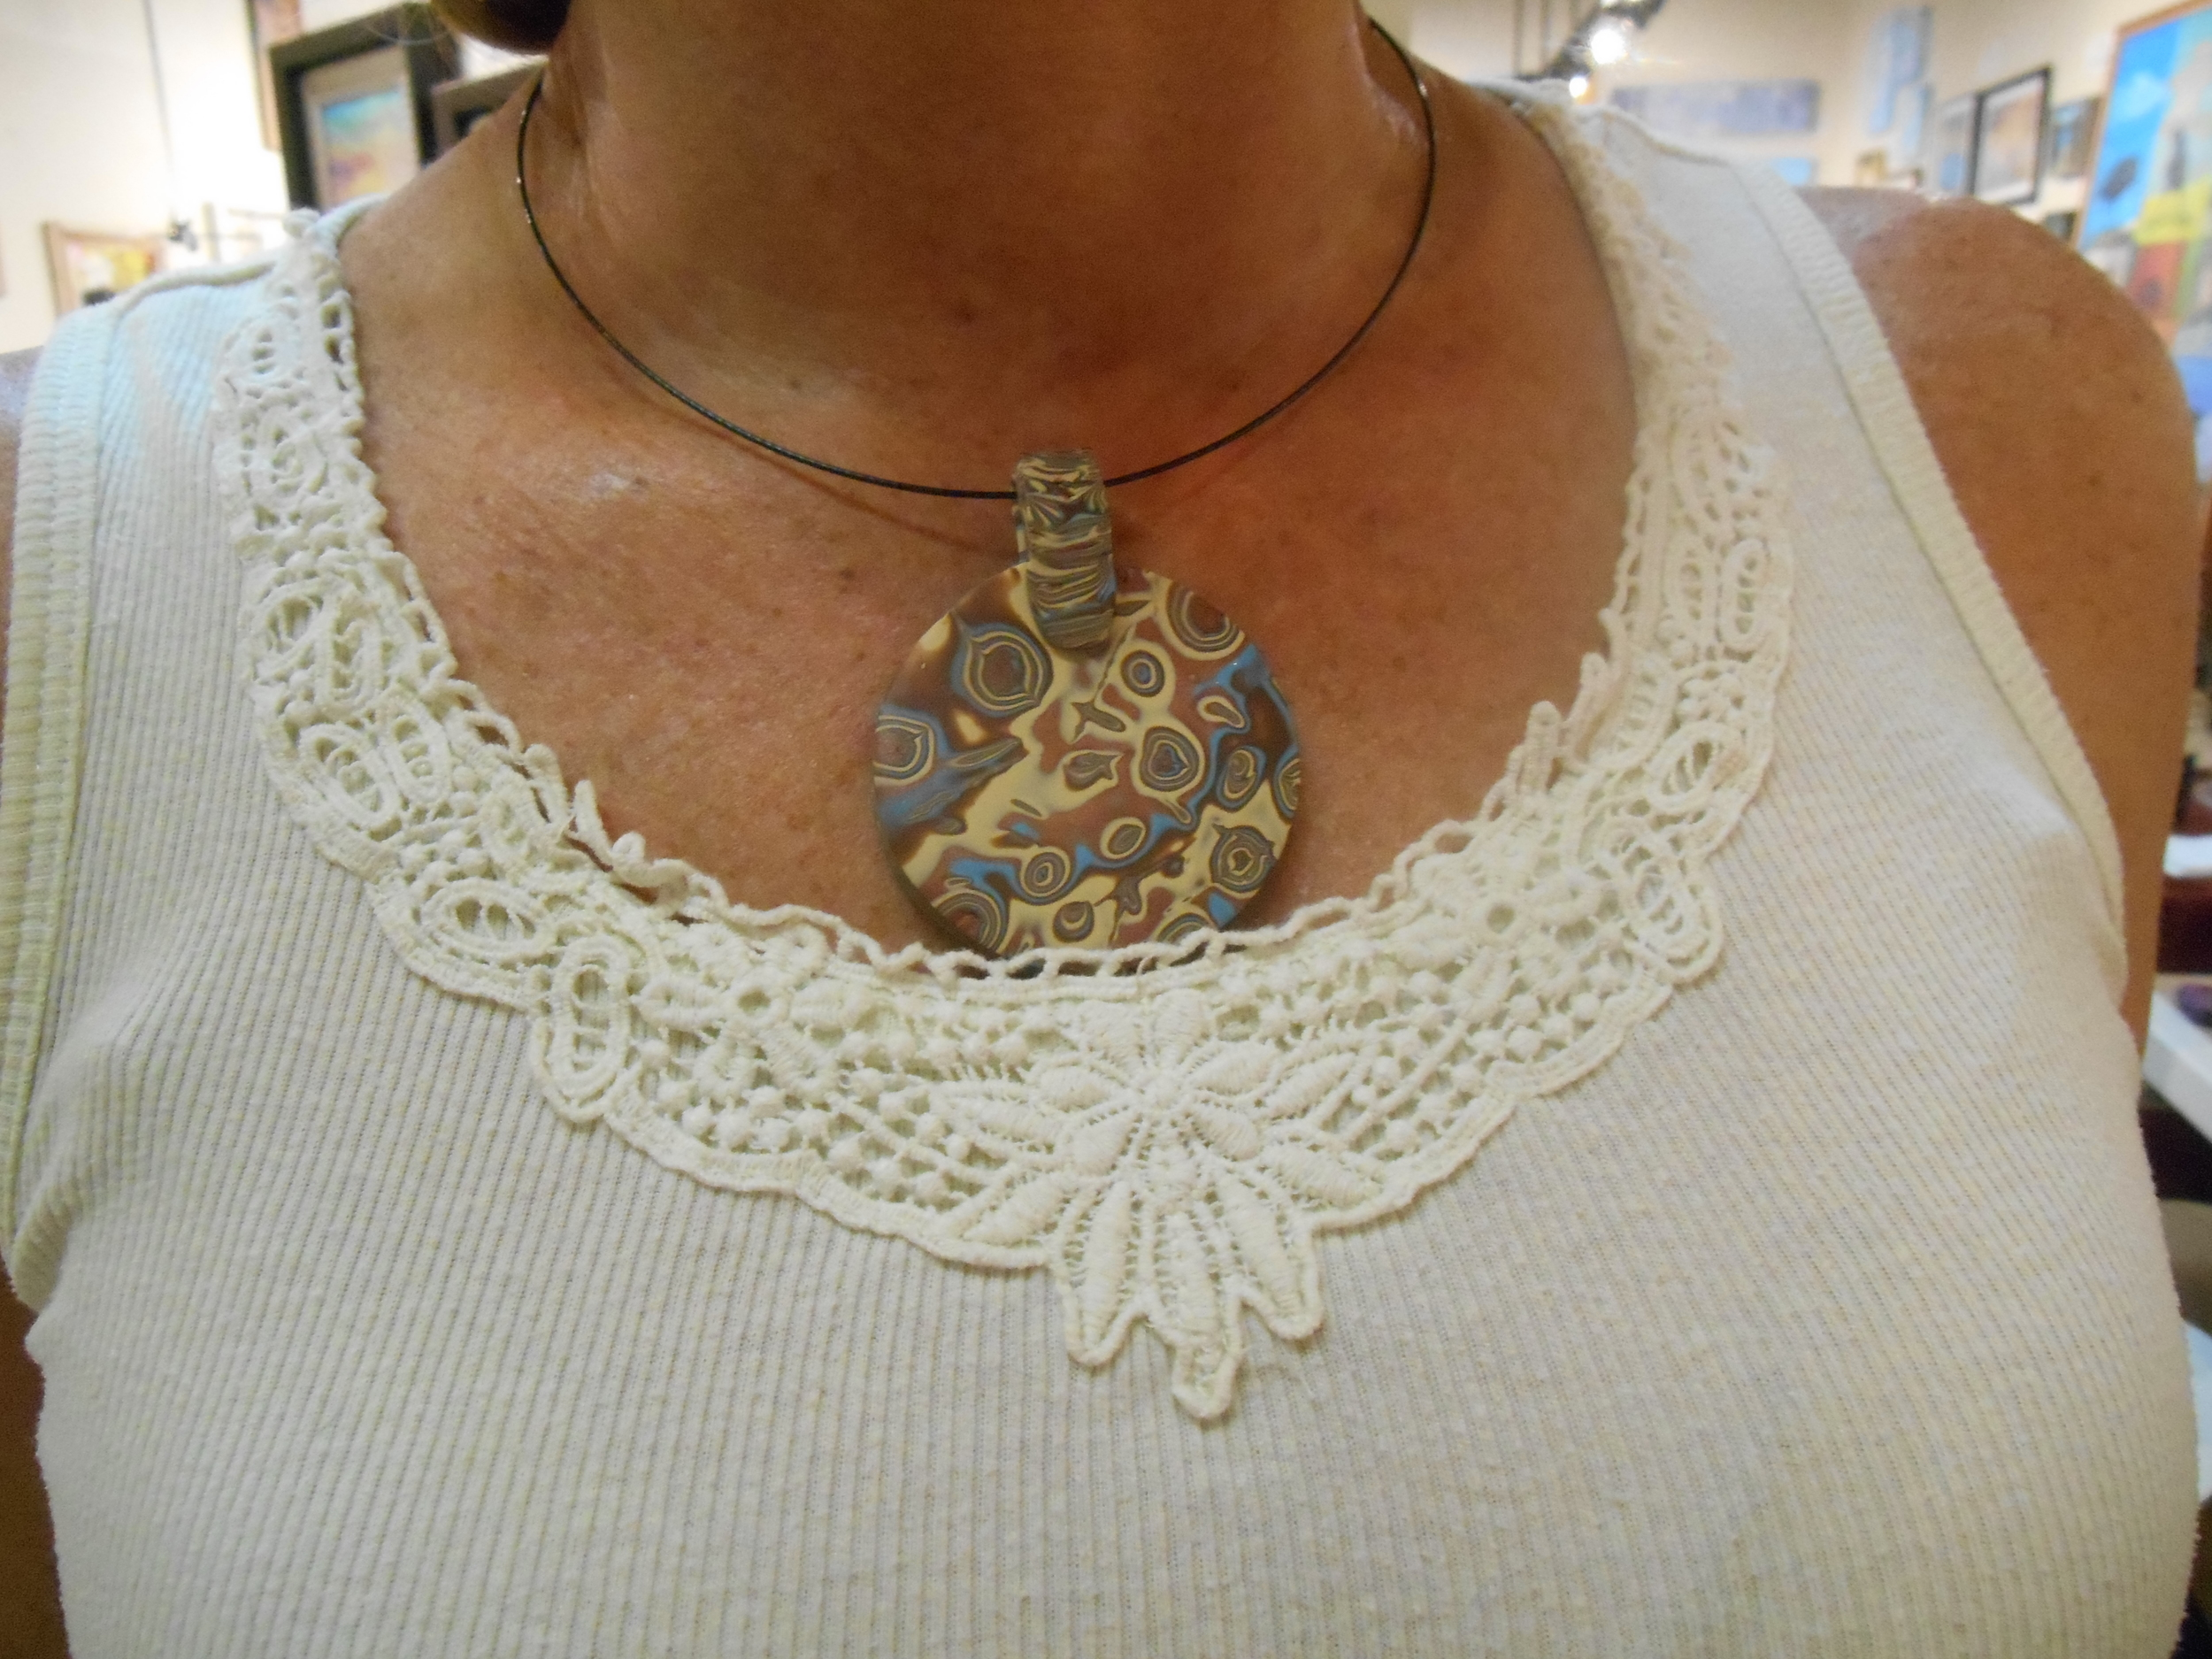 Here is a closer view of Debbie's creation! She made some gorgeous earrings to match too!